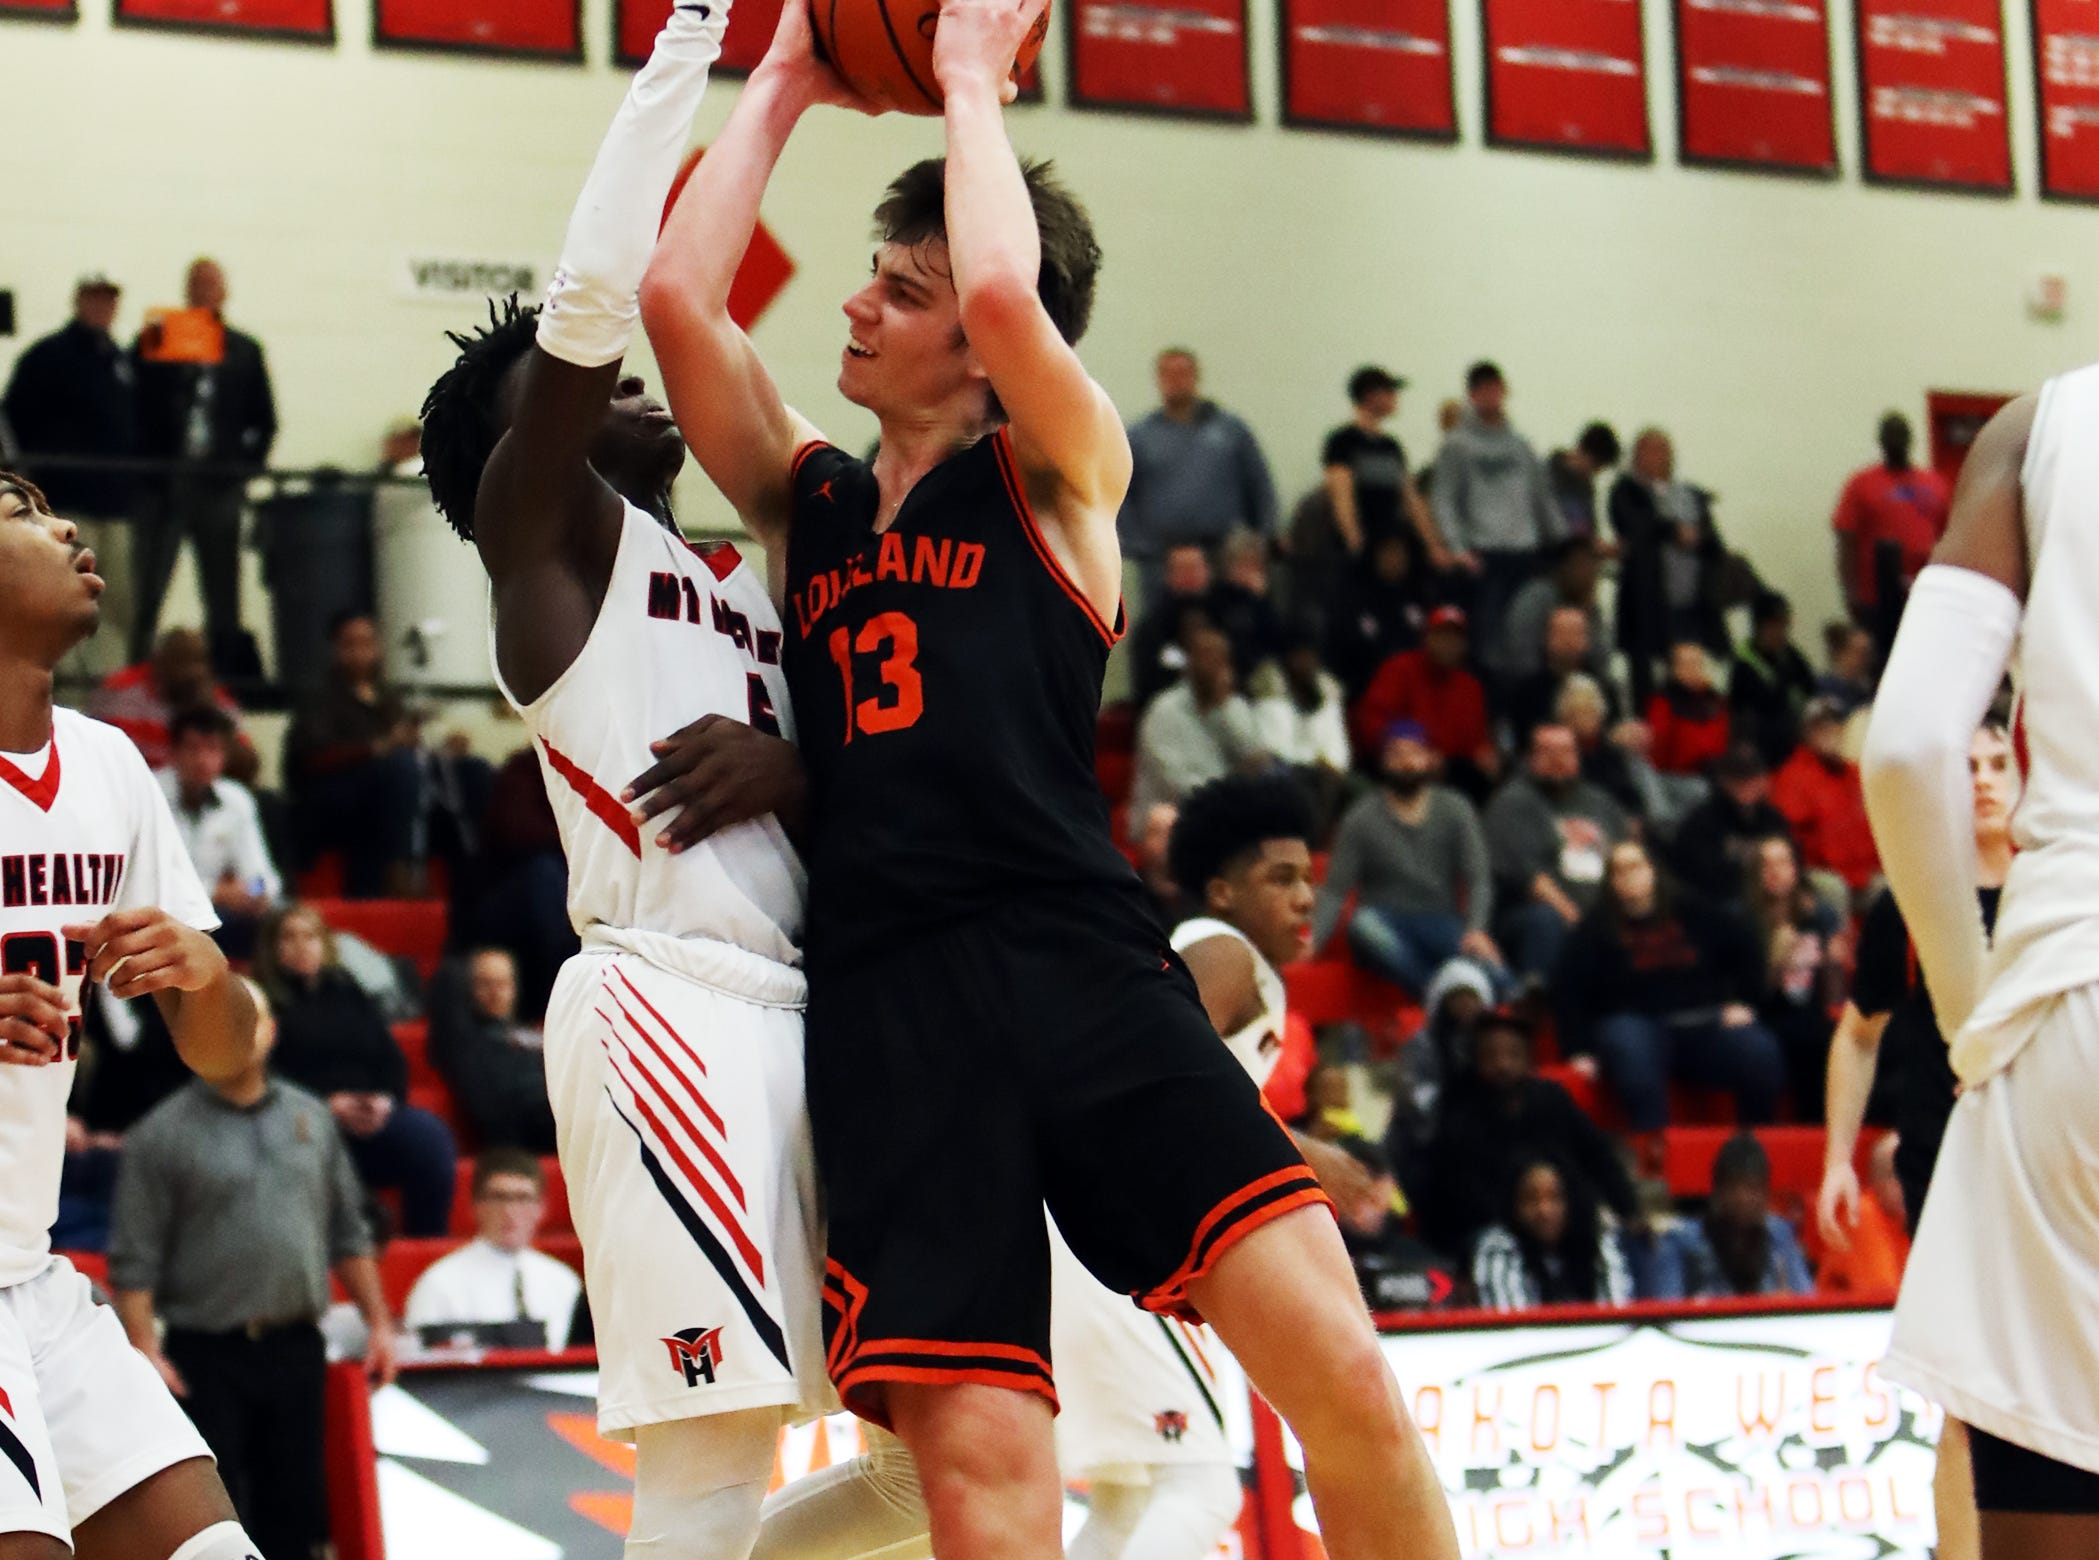 Loveland guard Jalen Greiser drives and scores in the sectional playoffs at Lakota West High School Feb. 23, 2019. Mount Healthy defeated Loveland 62-57.